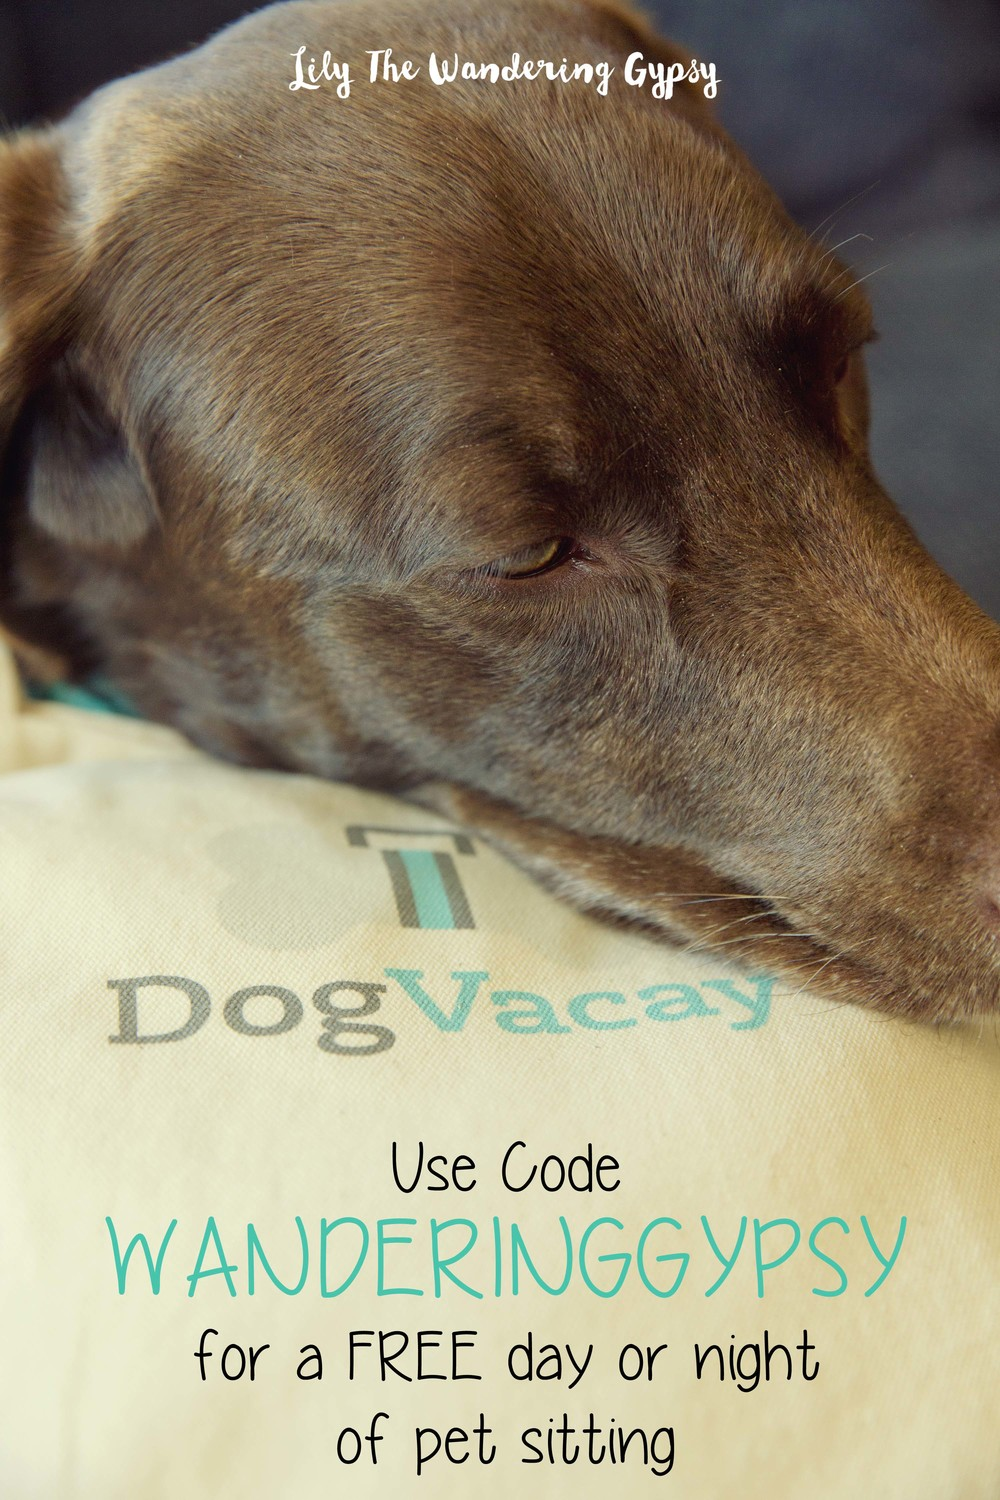 Use code WANDERINGGYPSY for a FREE day or night of pet sitting on  DogVacay !!